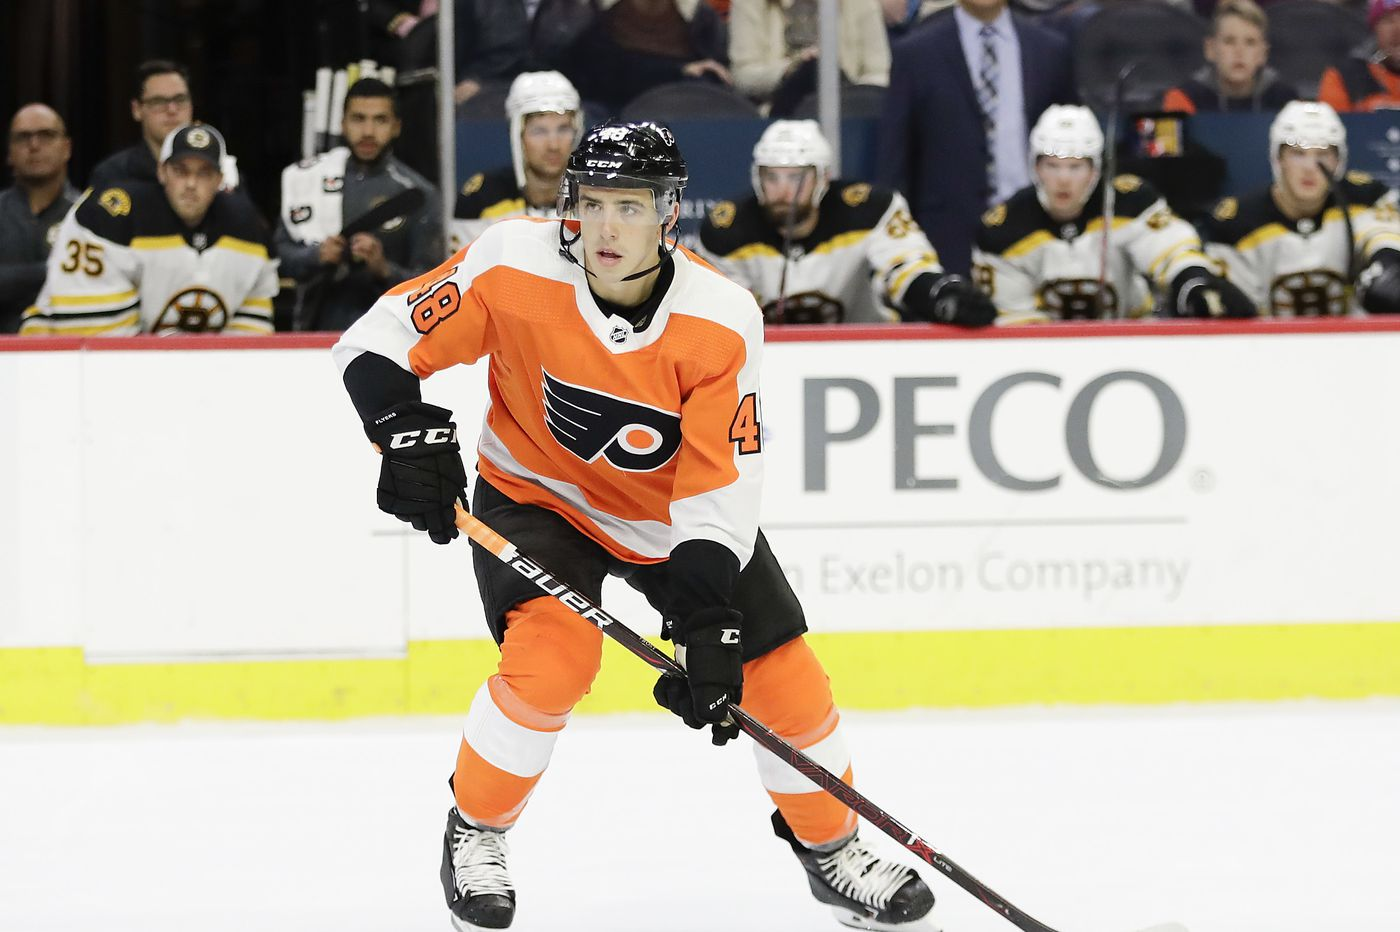 Morgan Frost scores in his NHL debut, but Flyers fall to Florida for 4th straight defeat